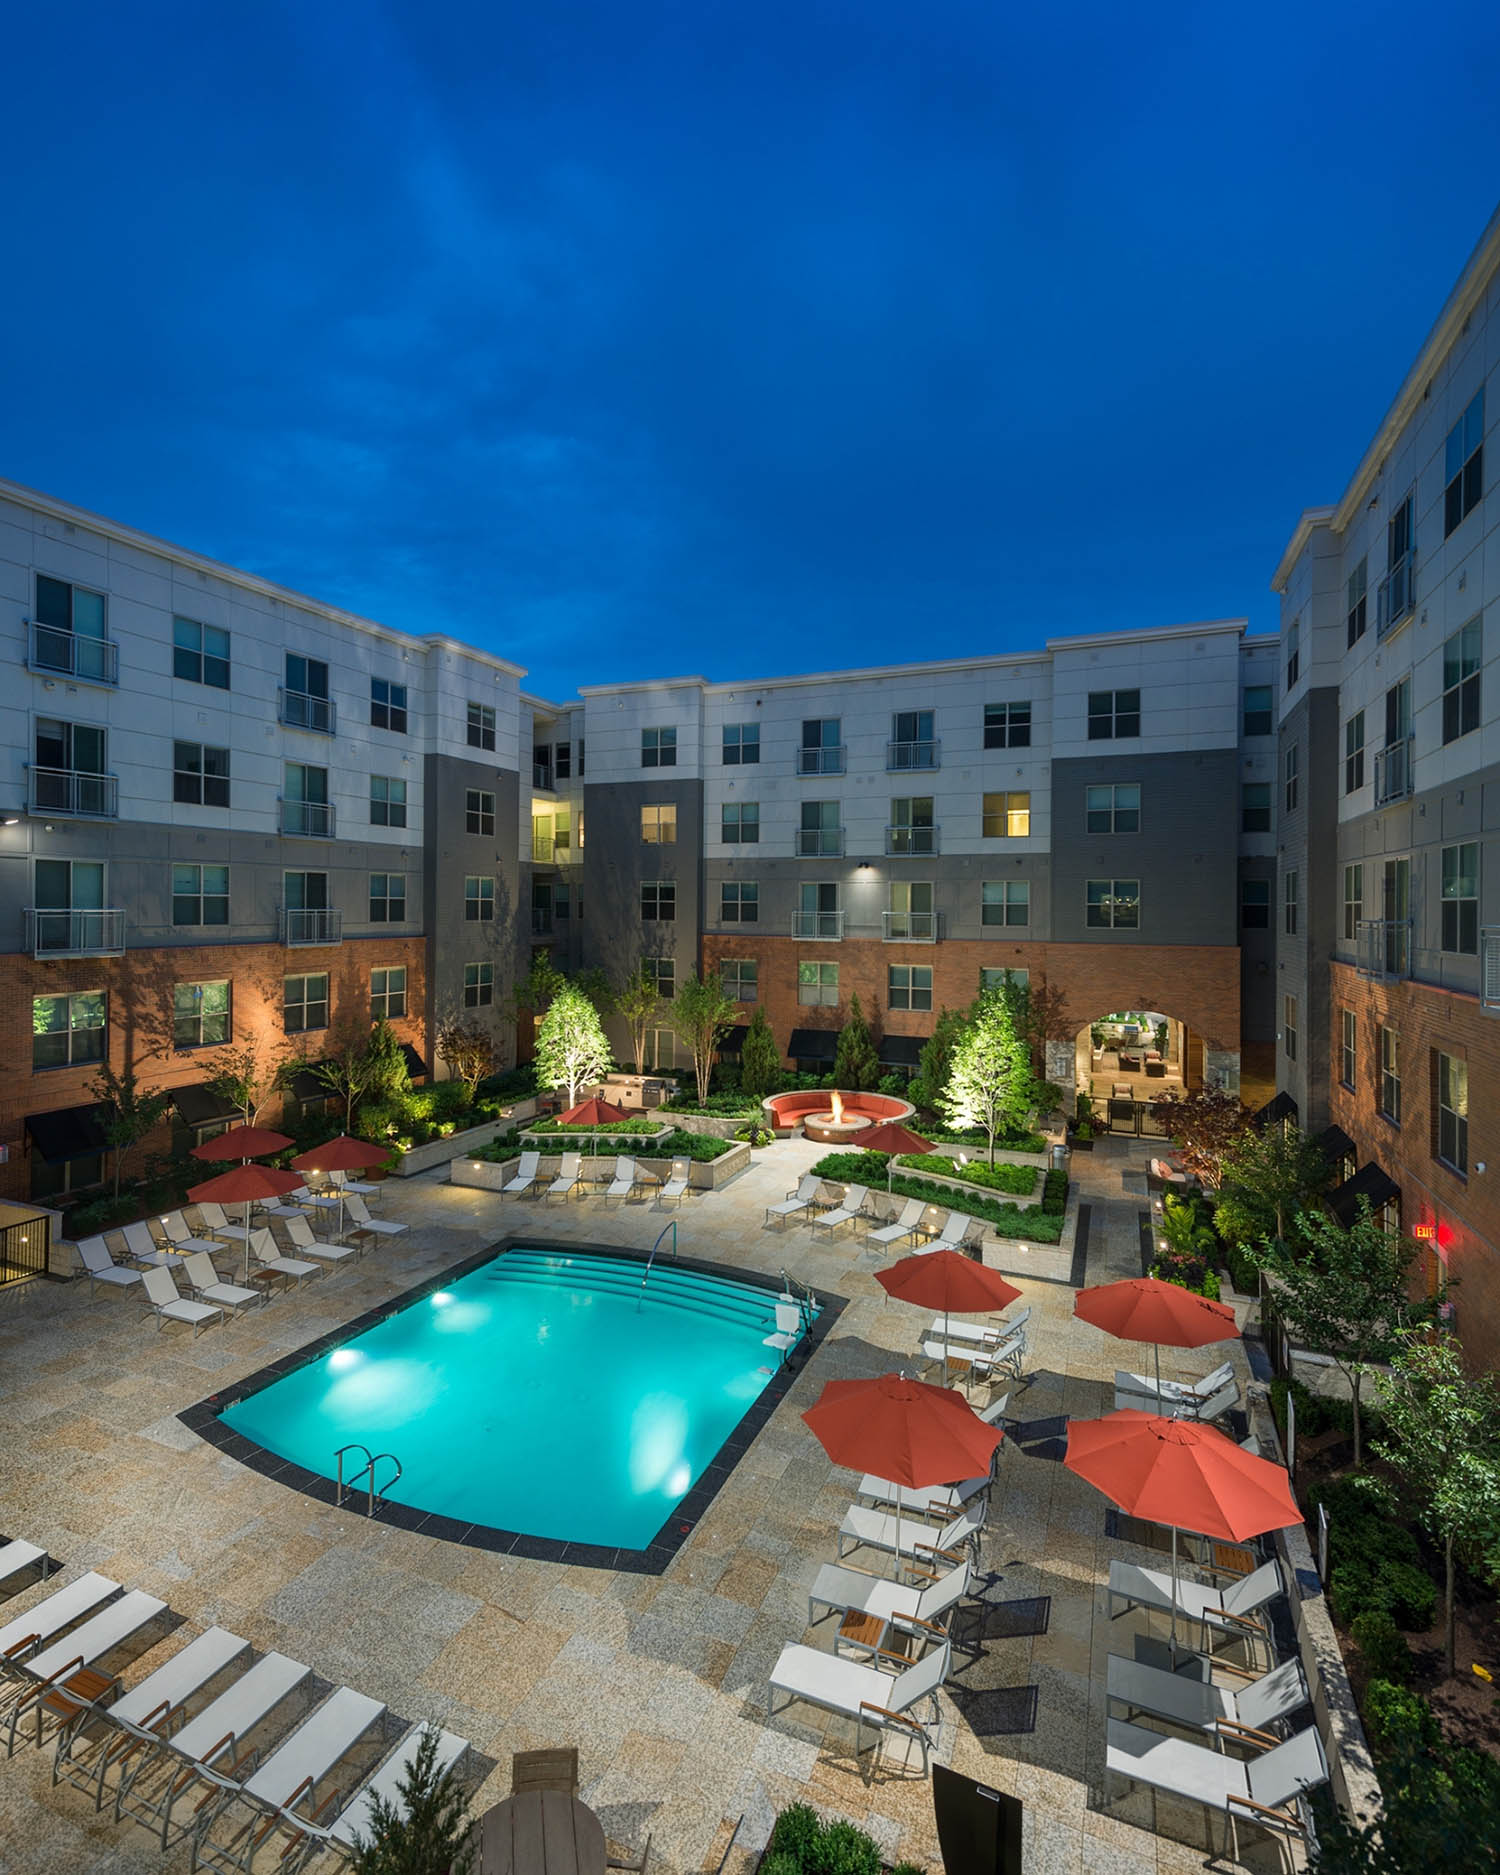 Parkview Place Apartments: Architecture, Interiors, Planning